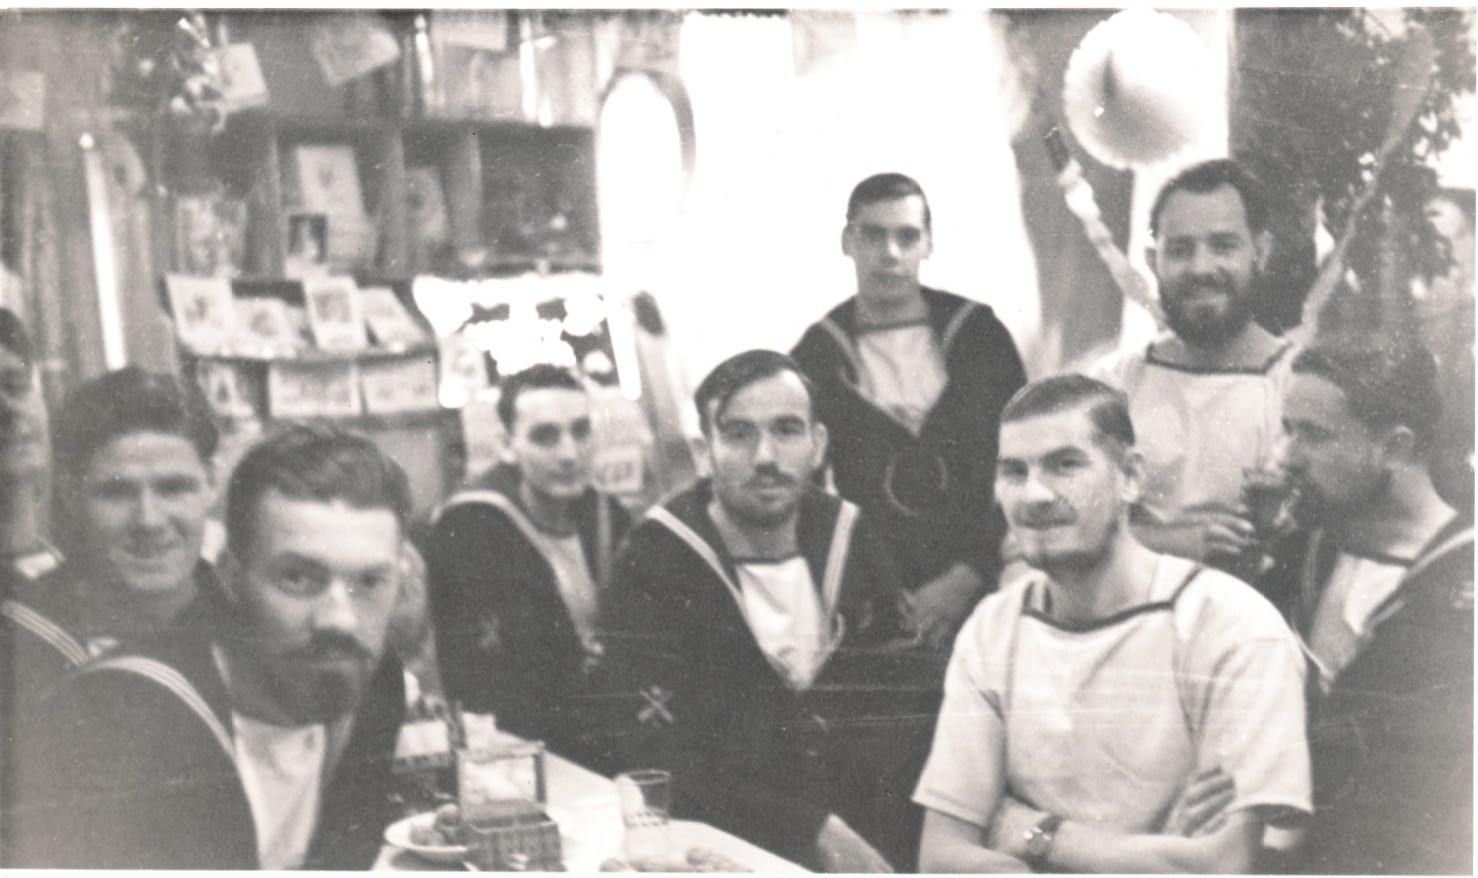 Lads of the Mess Xmas 1949 Peter Hornett middle back seated